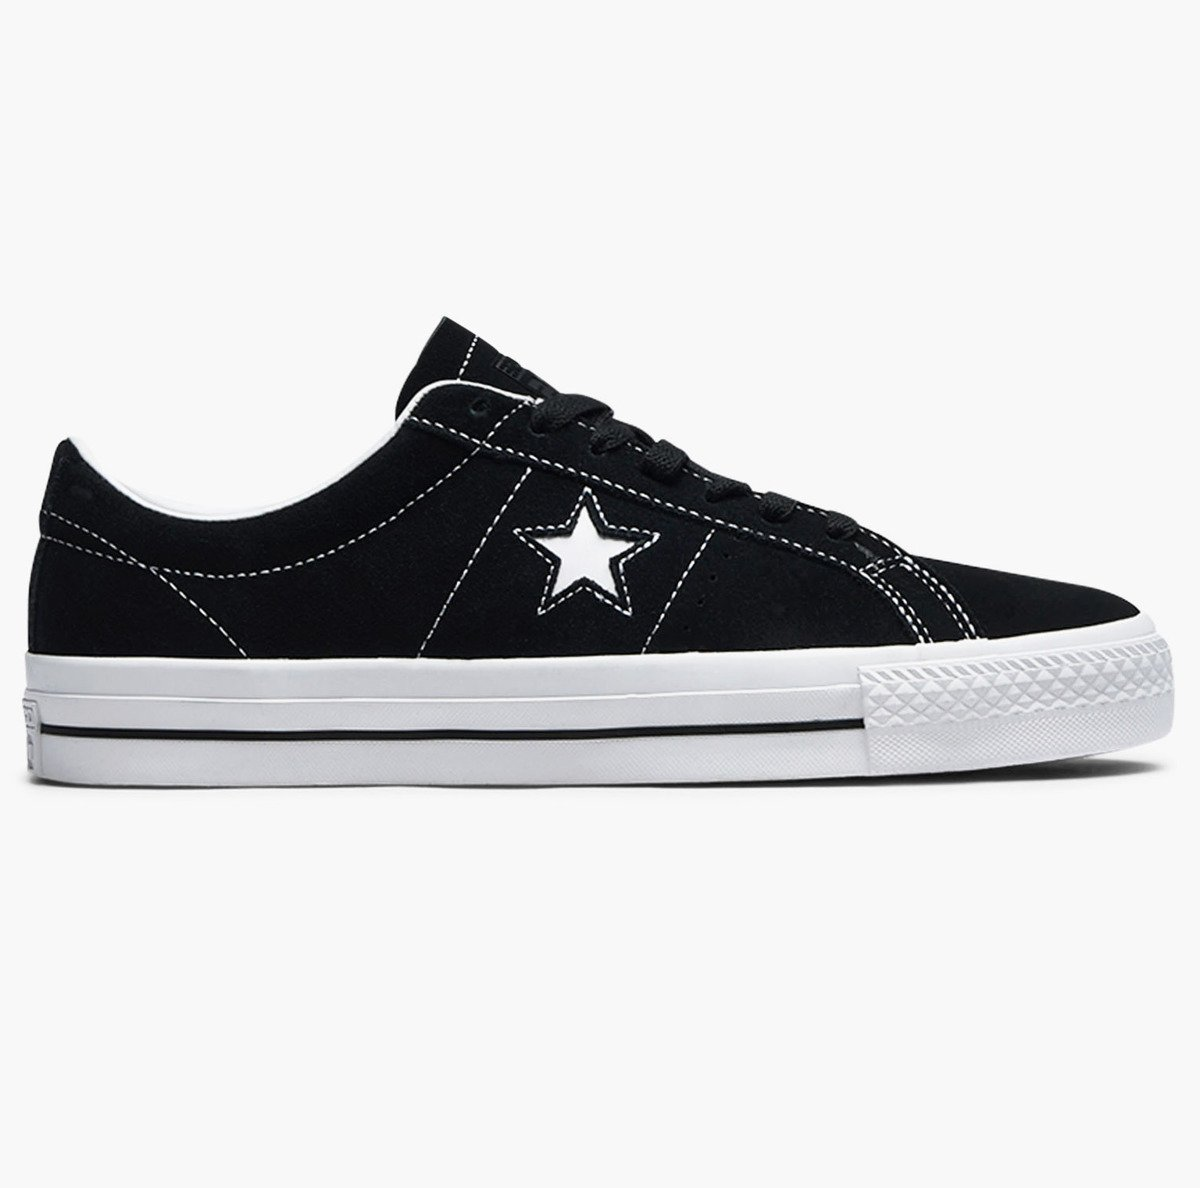 7268ec6bbe Miniramp Skateshop Buty Converse One Star Pro Refinement Ox  (black white white)